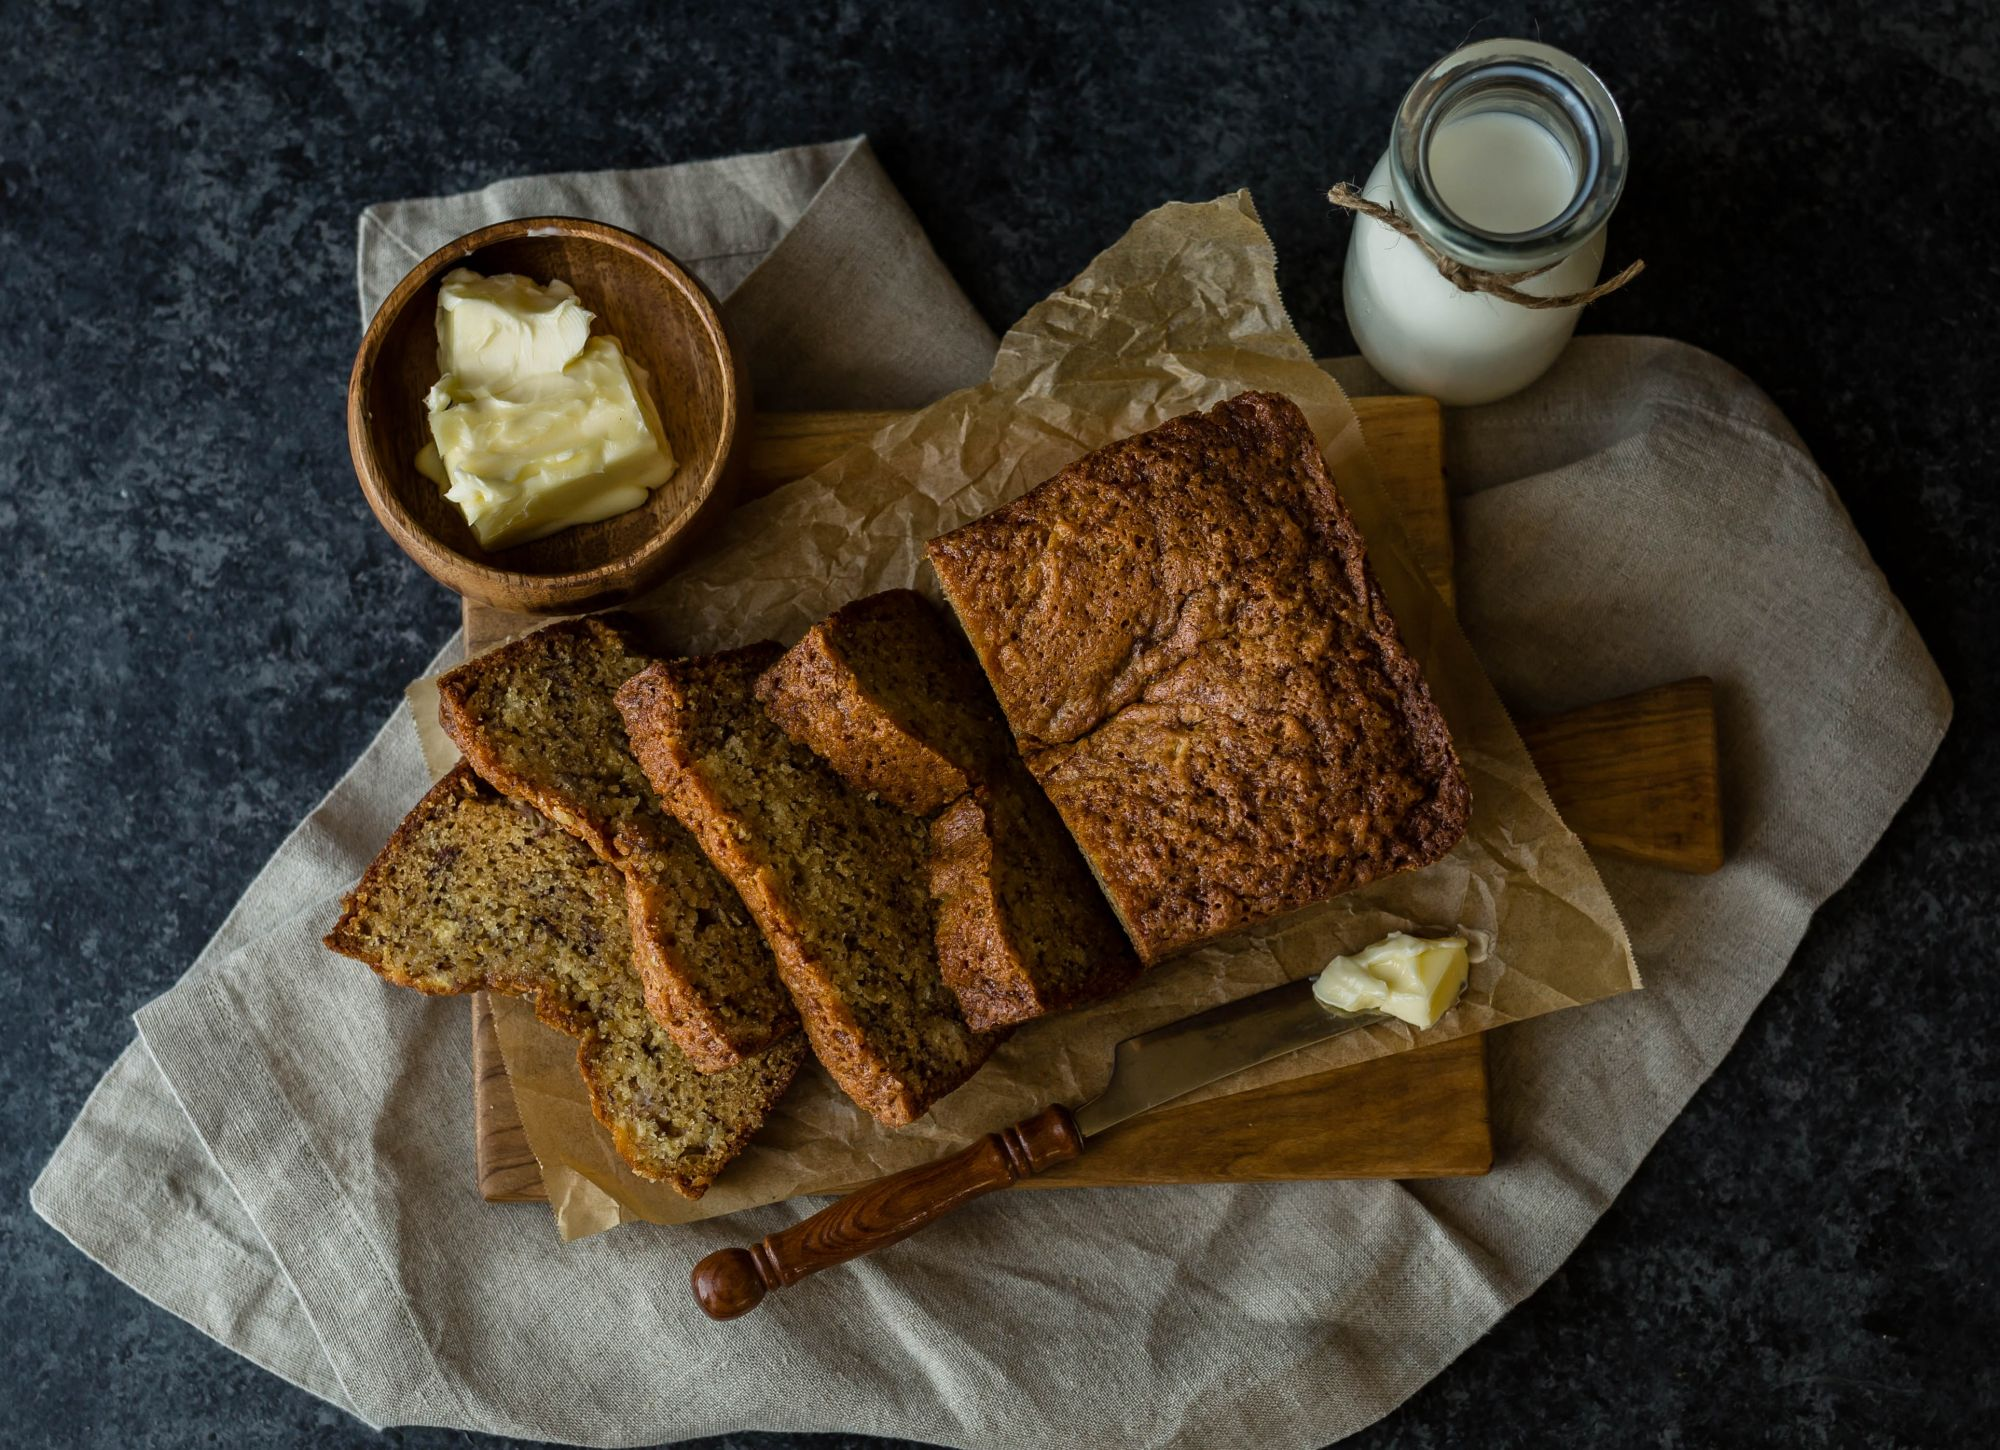 Cooking At Home: 5 Easy Ways To Upgrade Your Banana Bread Recipe